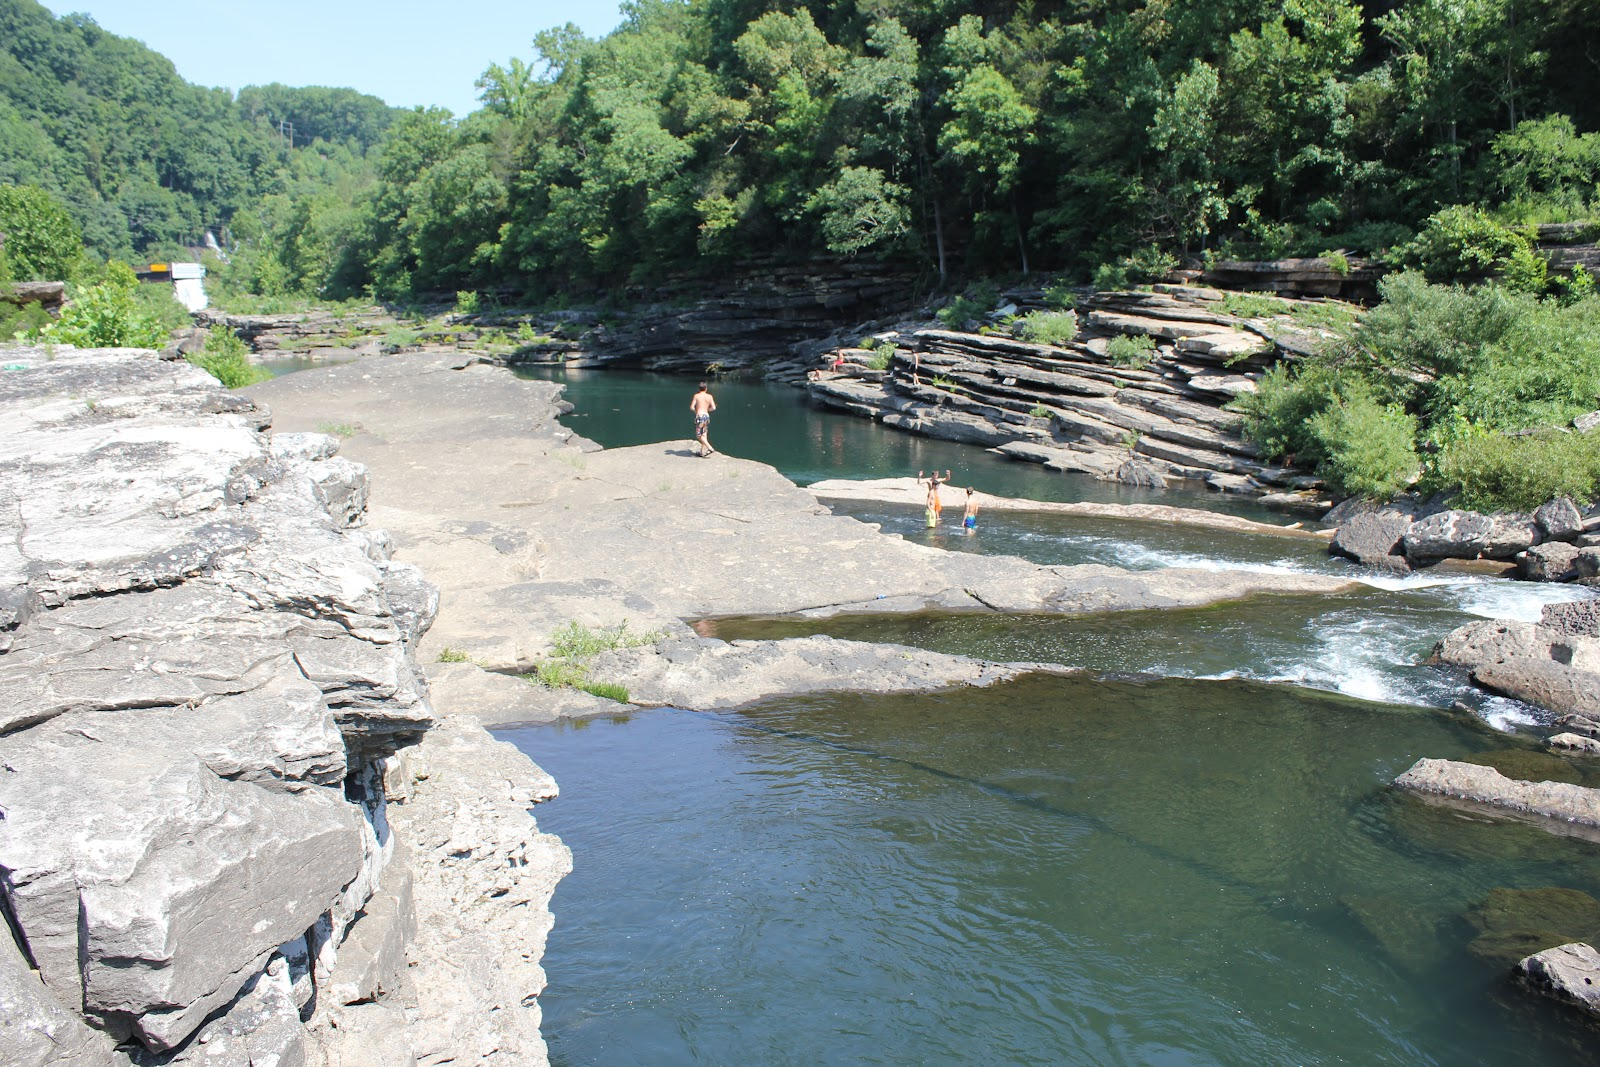 Island Acres State Park Rock Island State Park is